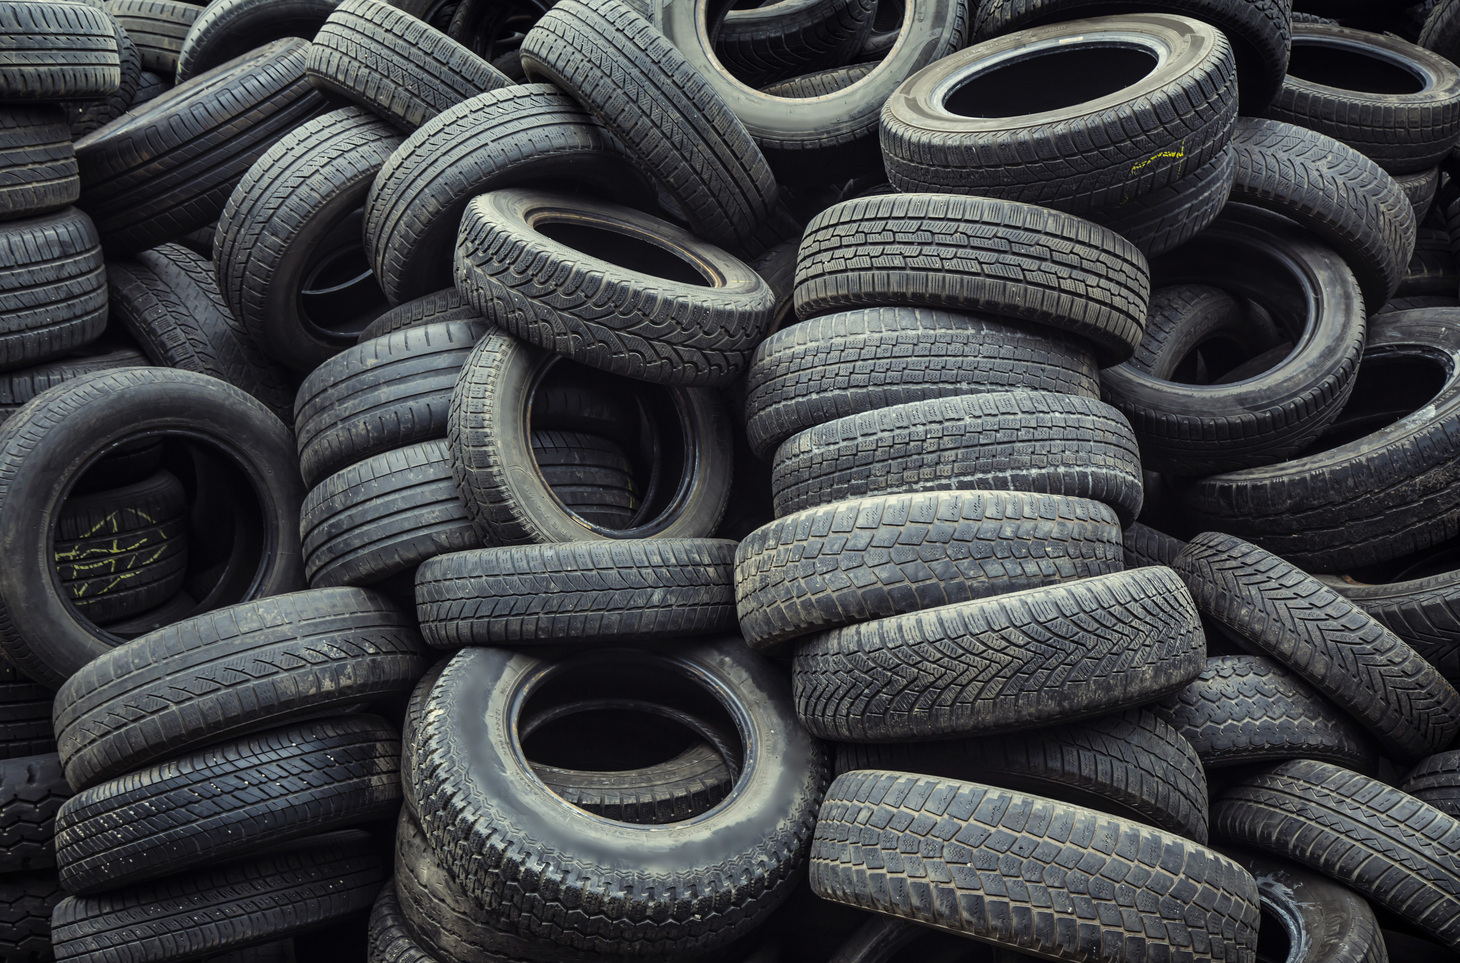 SEPA invites you to help ensure Tyre Sector Plan is on the right track